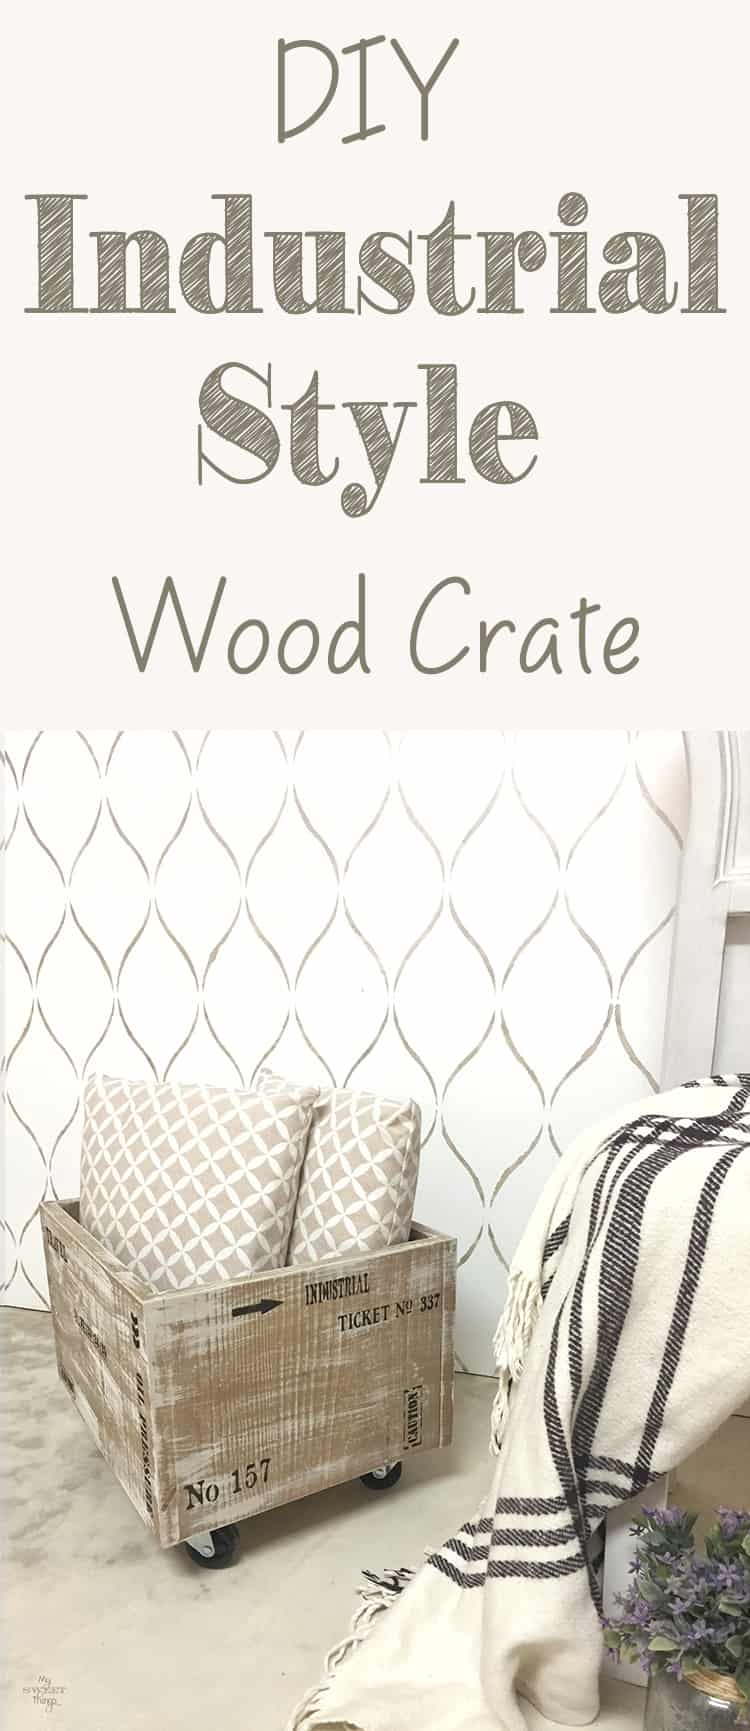 How to make an easy industrial style wood crate with some paint and stencils · Via www.sweethings.net